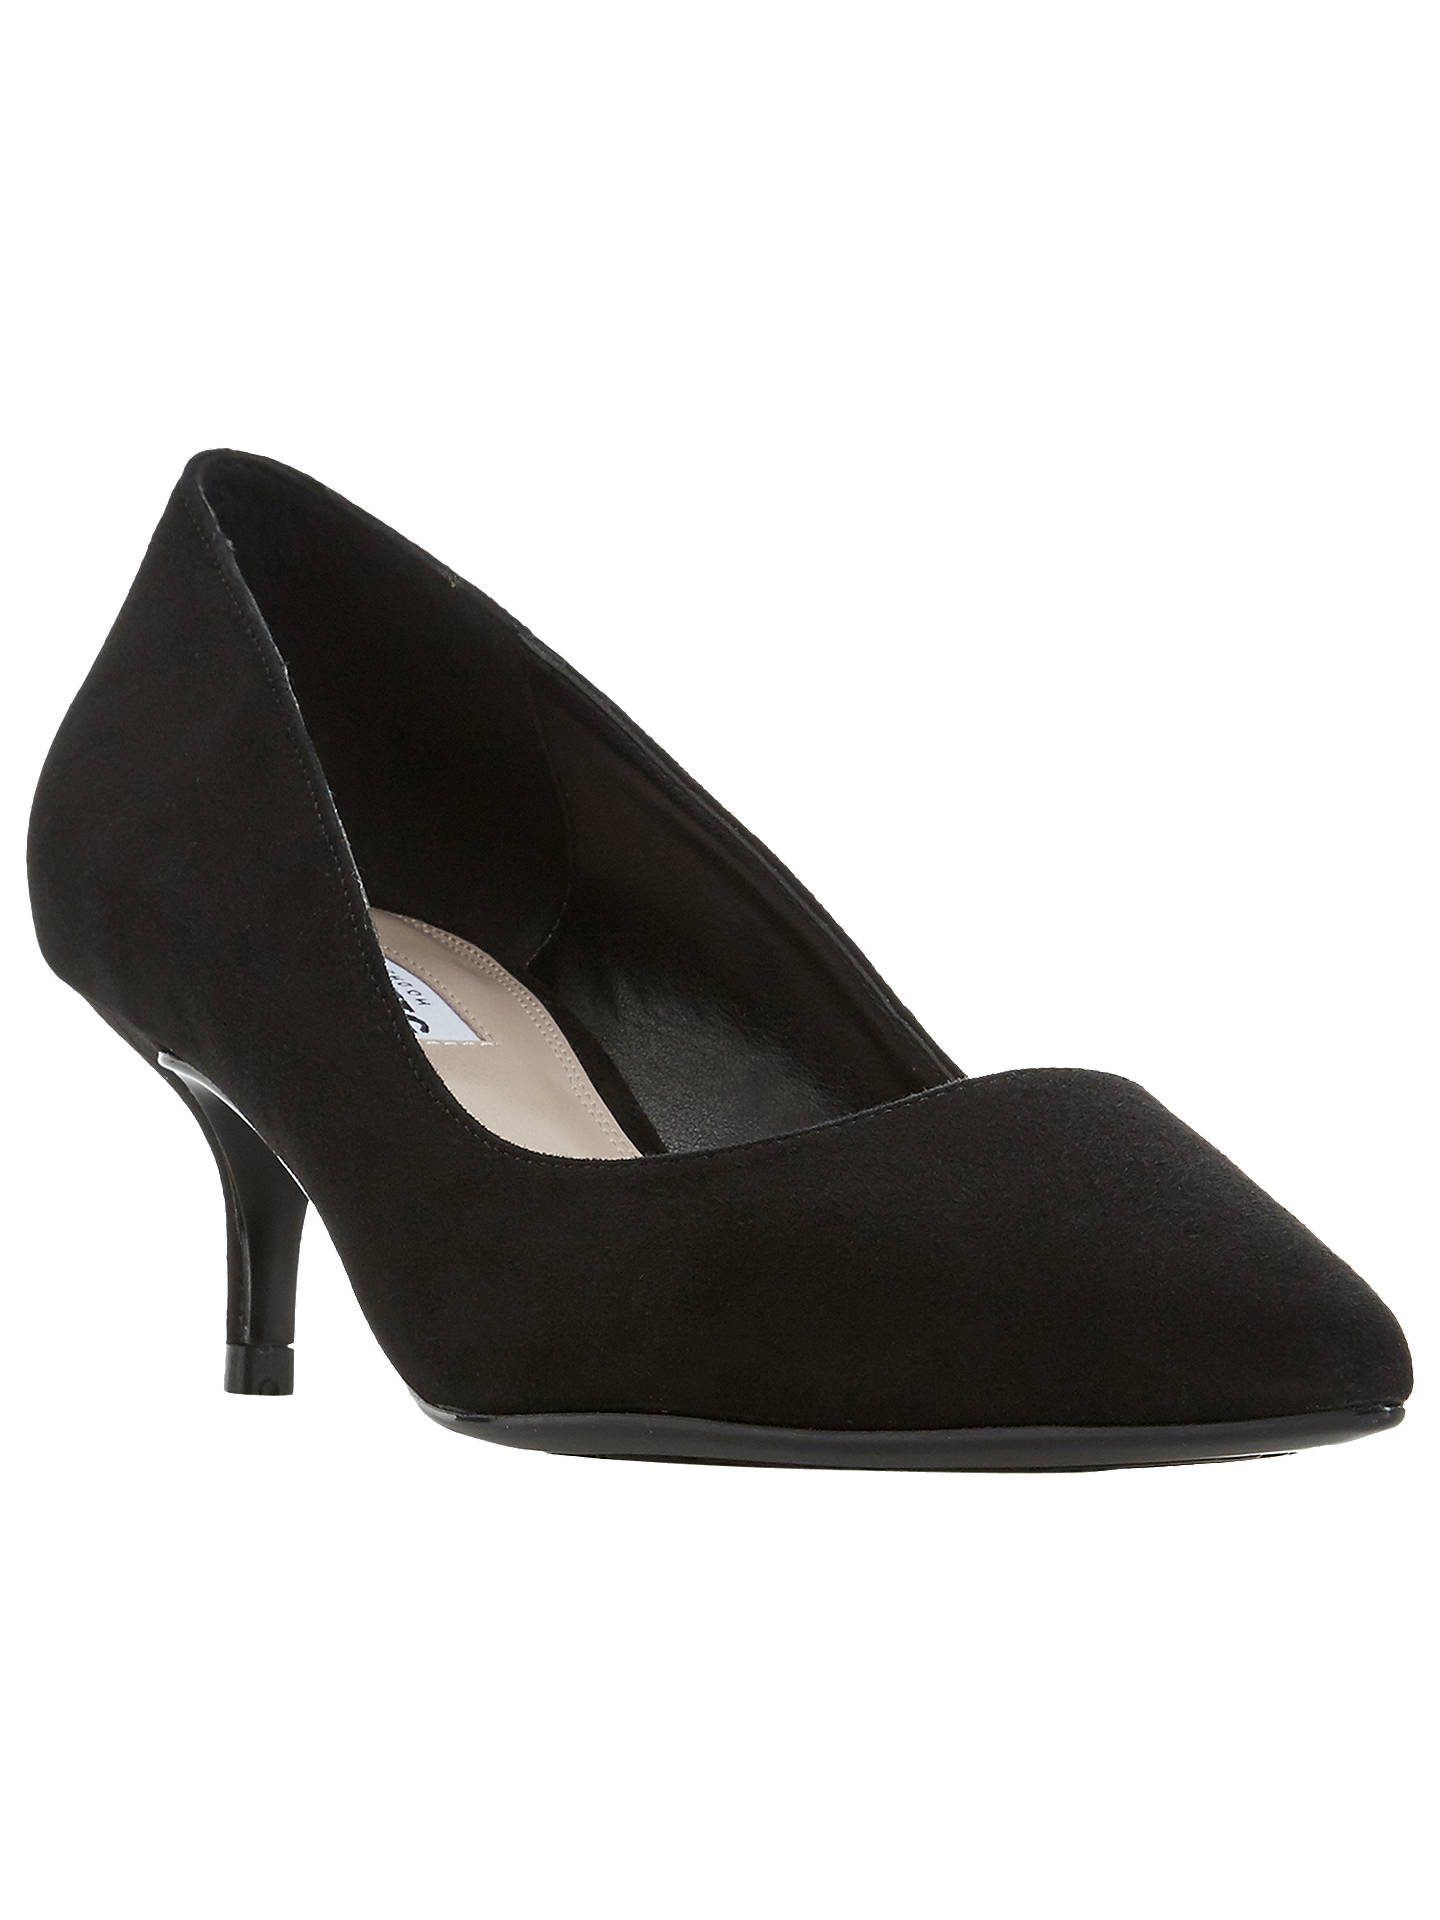 60bac45c5b Buy Dune Alesandra Pointed Kitten Heel Shoes, Black Suede, 3 Online at  johnlewis.